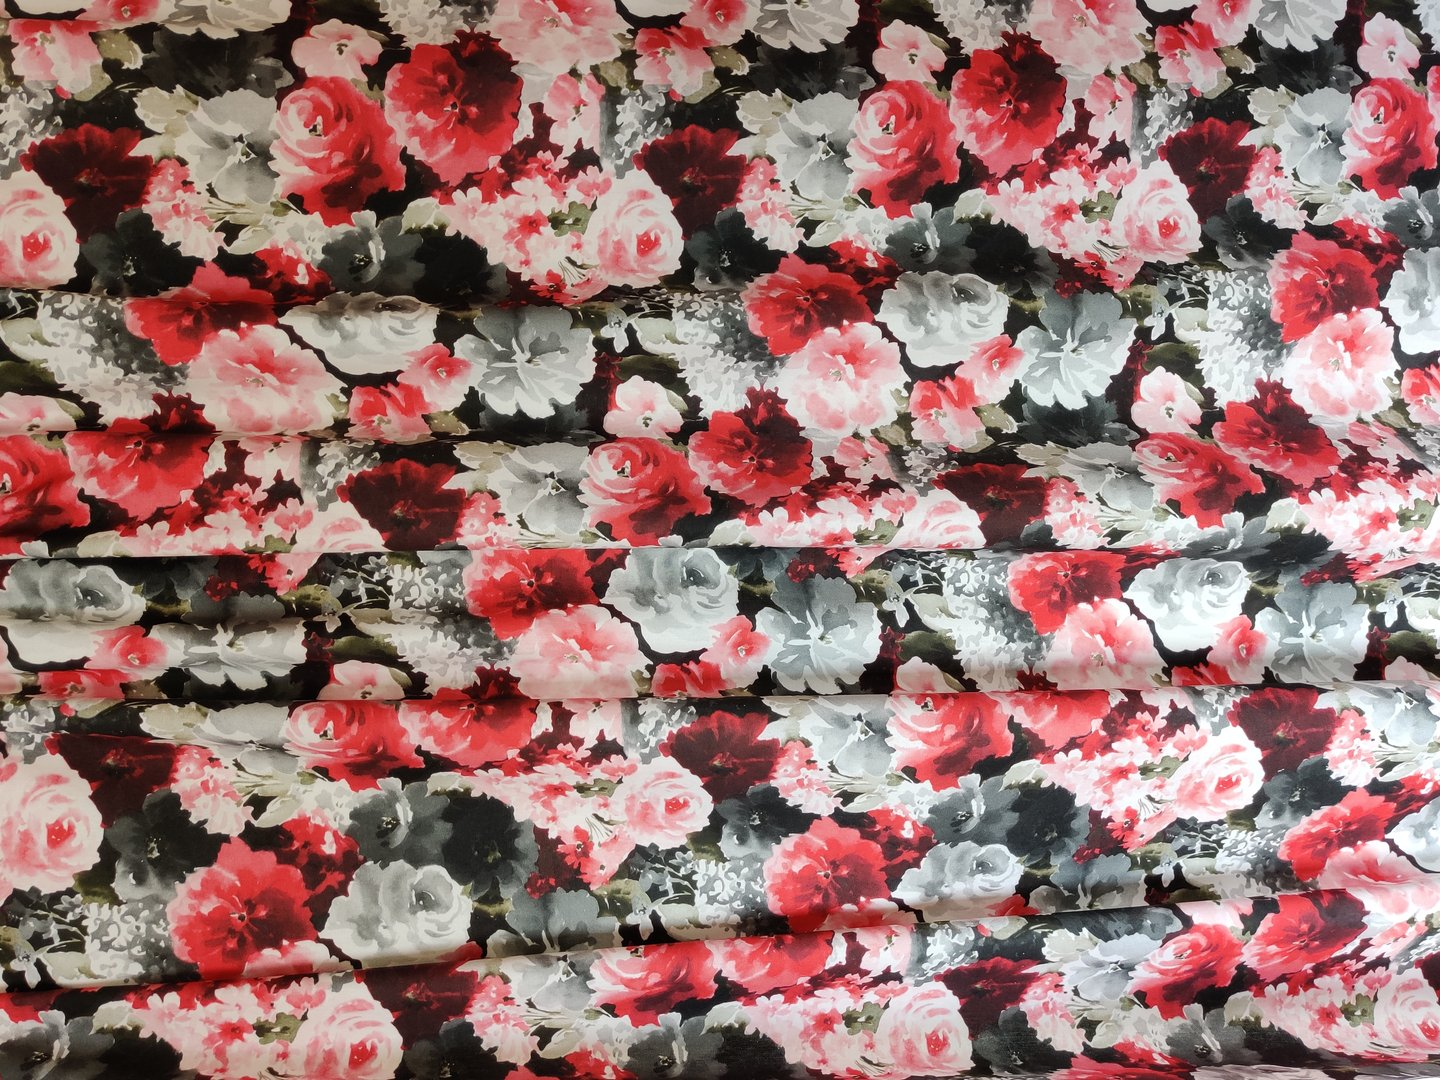 Roses in cotton fabric